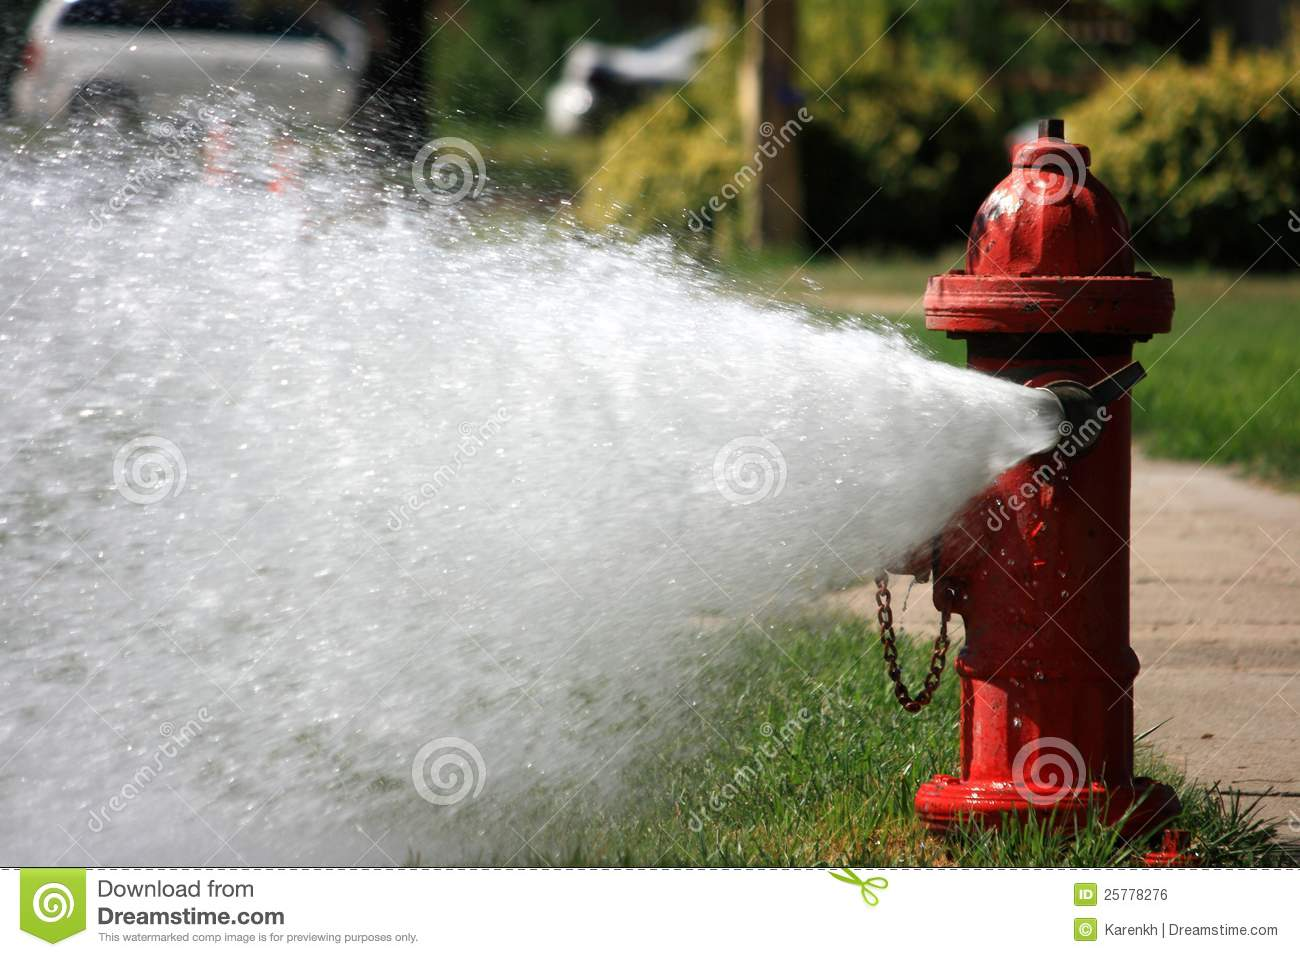 Download Open Fire Hydrant Gushing High Pressure Water Stock Photo - Image of plug, hookups: 25778276